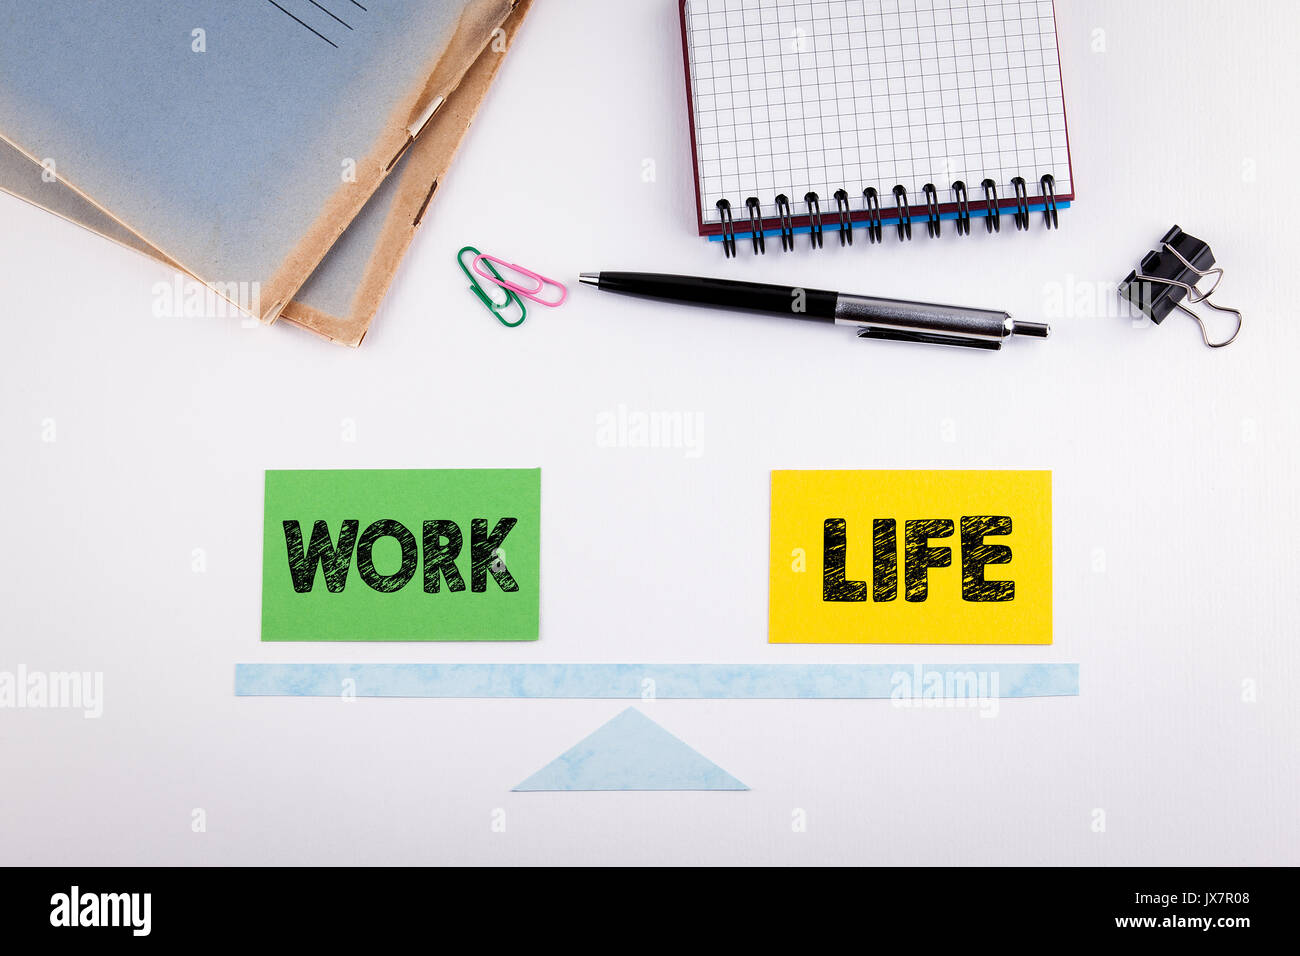 Work Life Balance concept. Paper scale on a white table. - Stock Image